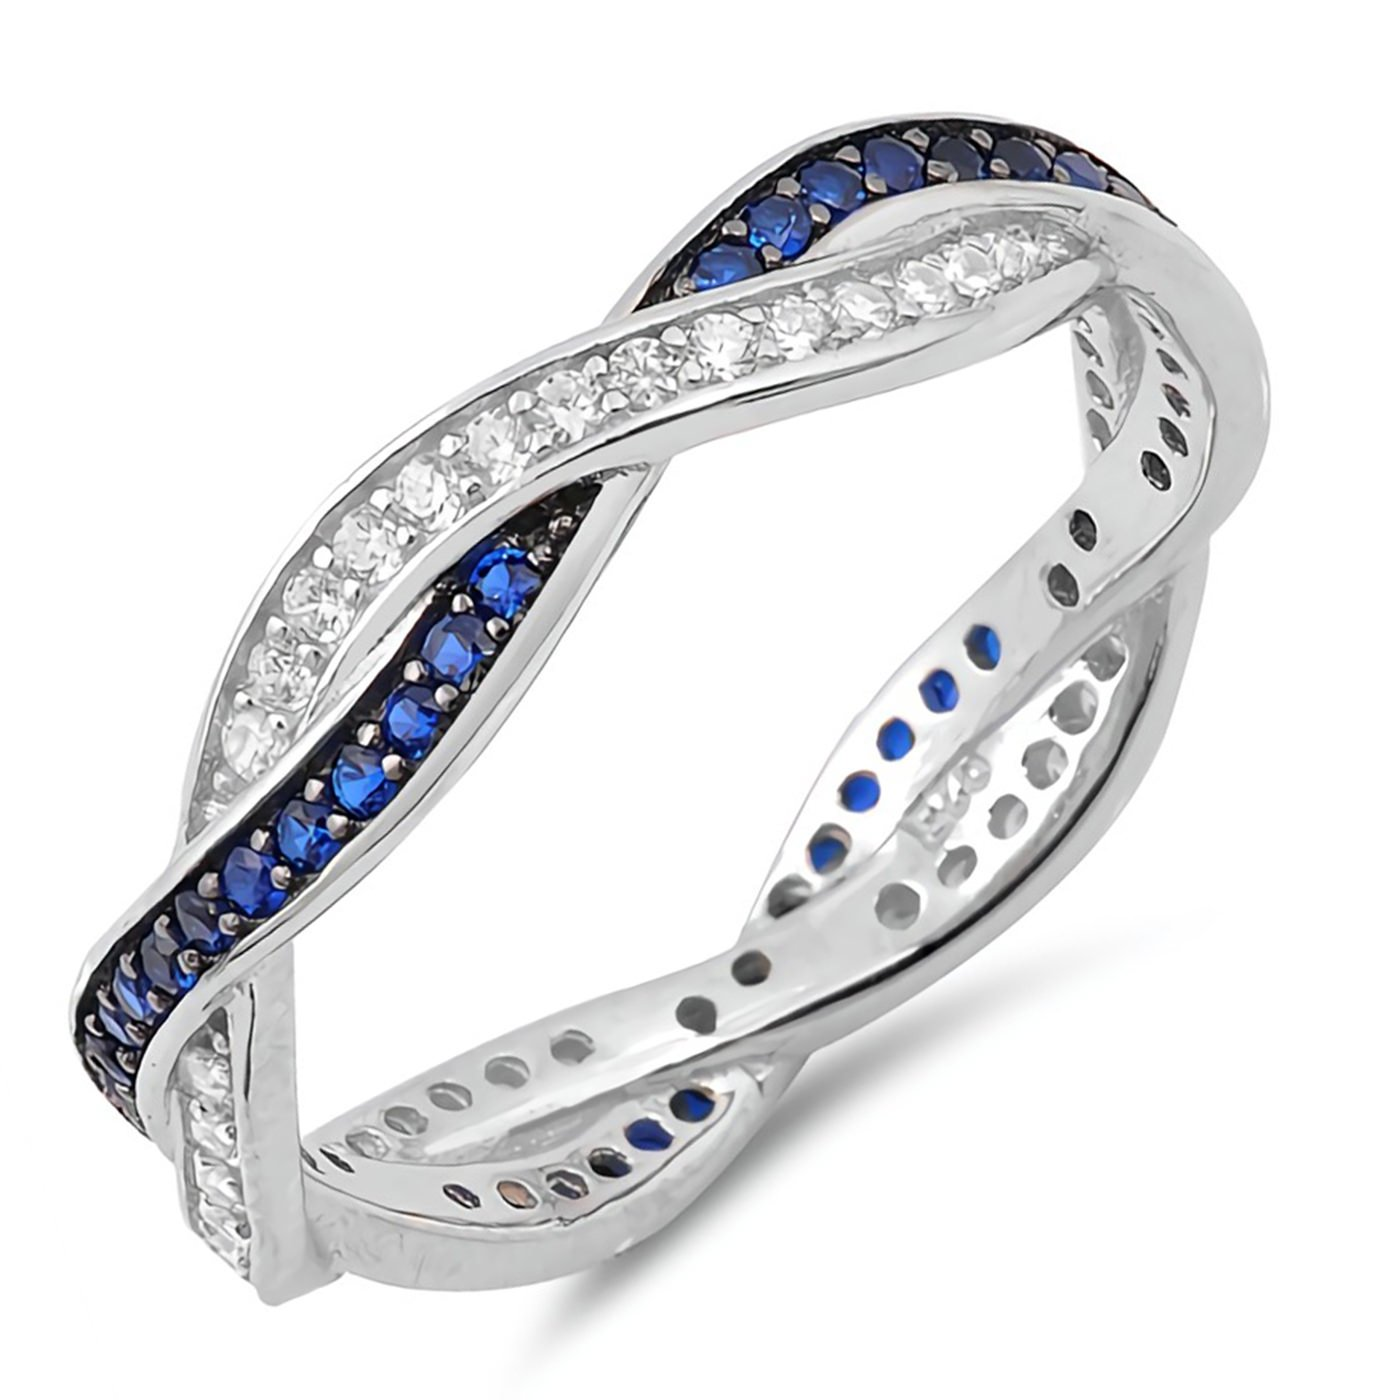 Infinity Twist Braid Engagement Promise Ring Womens Sterling Silver Cubic Zirconia Size 9 -Blue